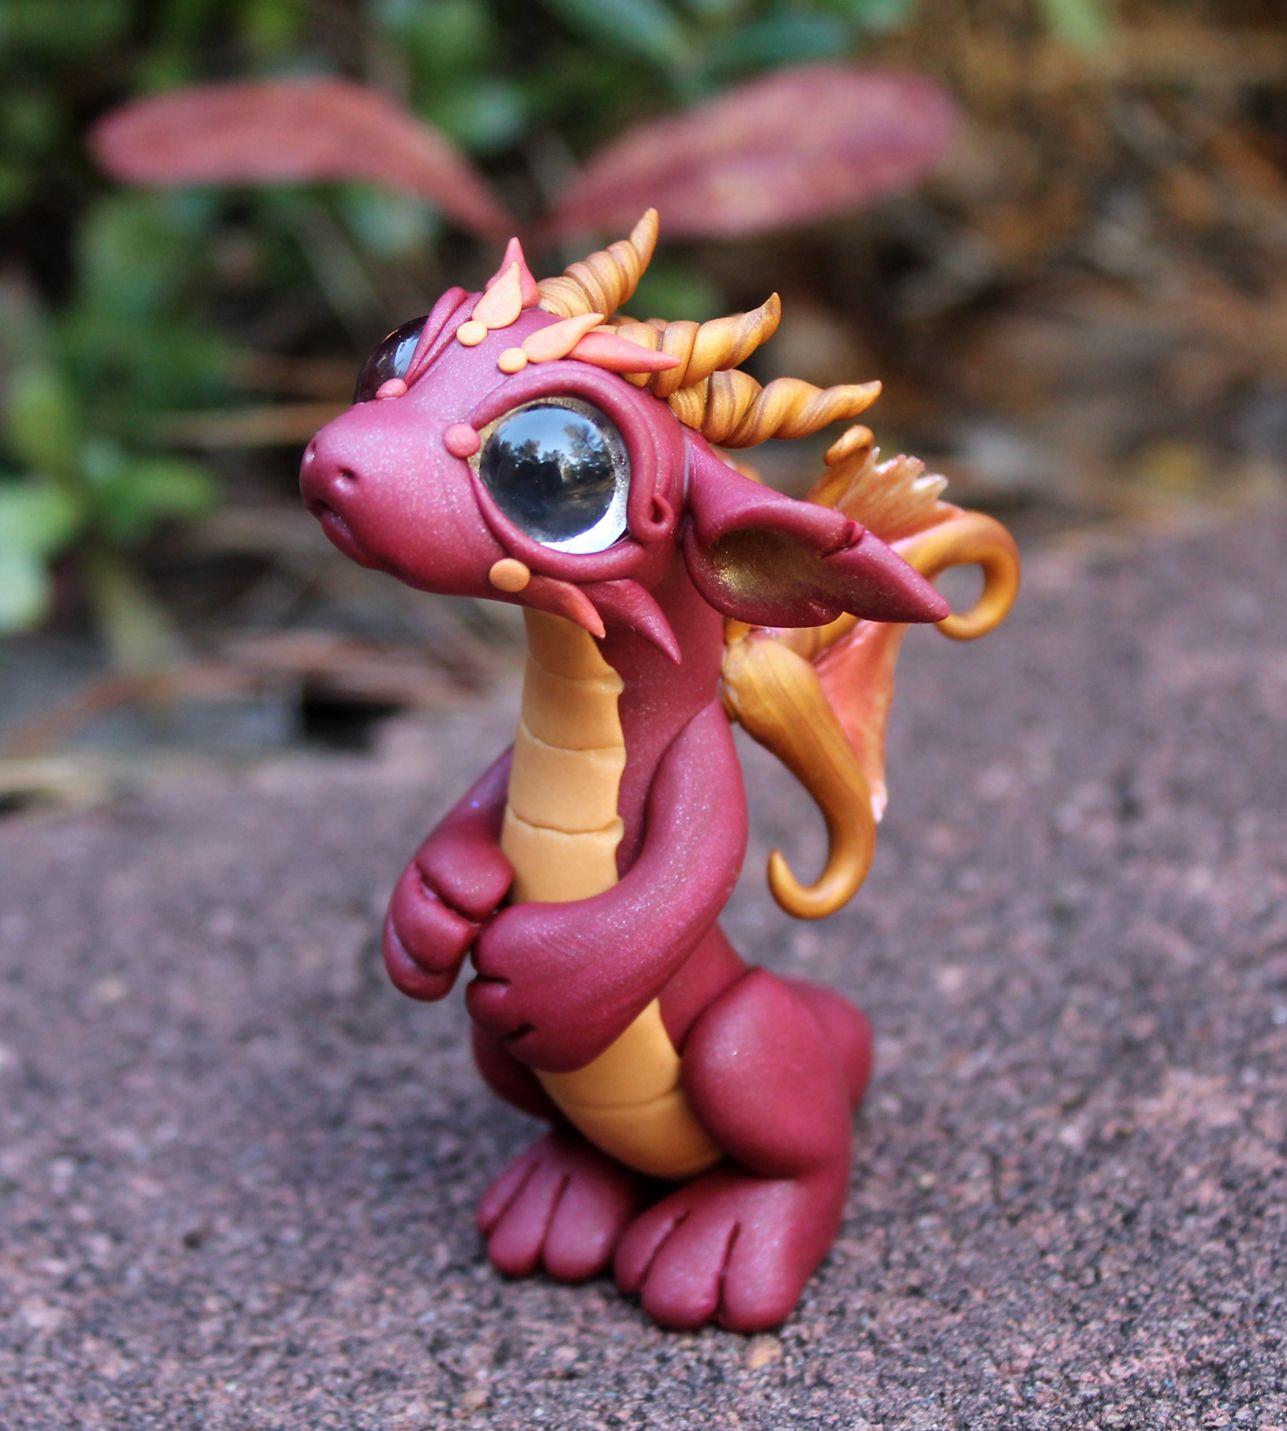 Red Clay Dragon: Bitty Baby Red Dragon With Fairy Wings.